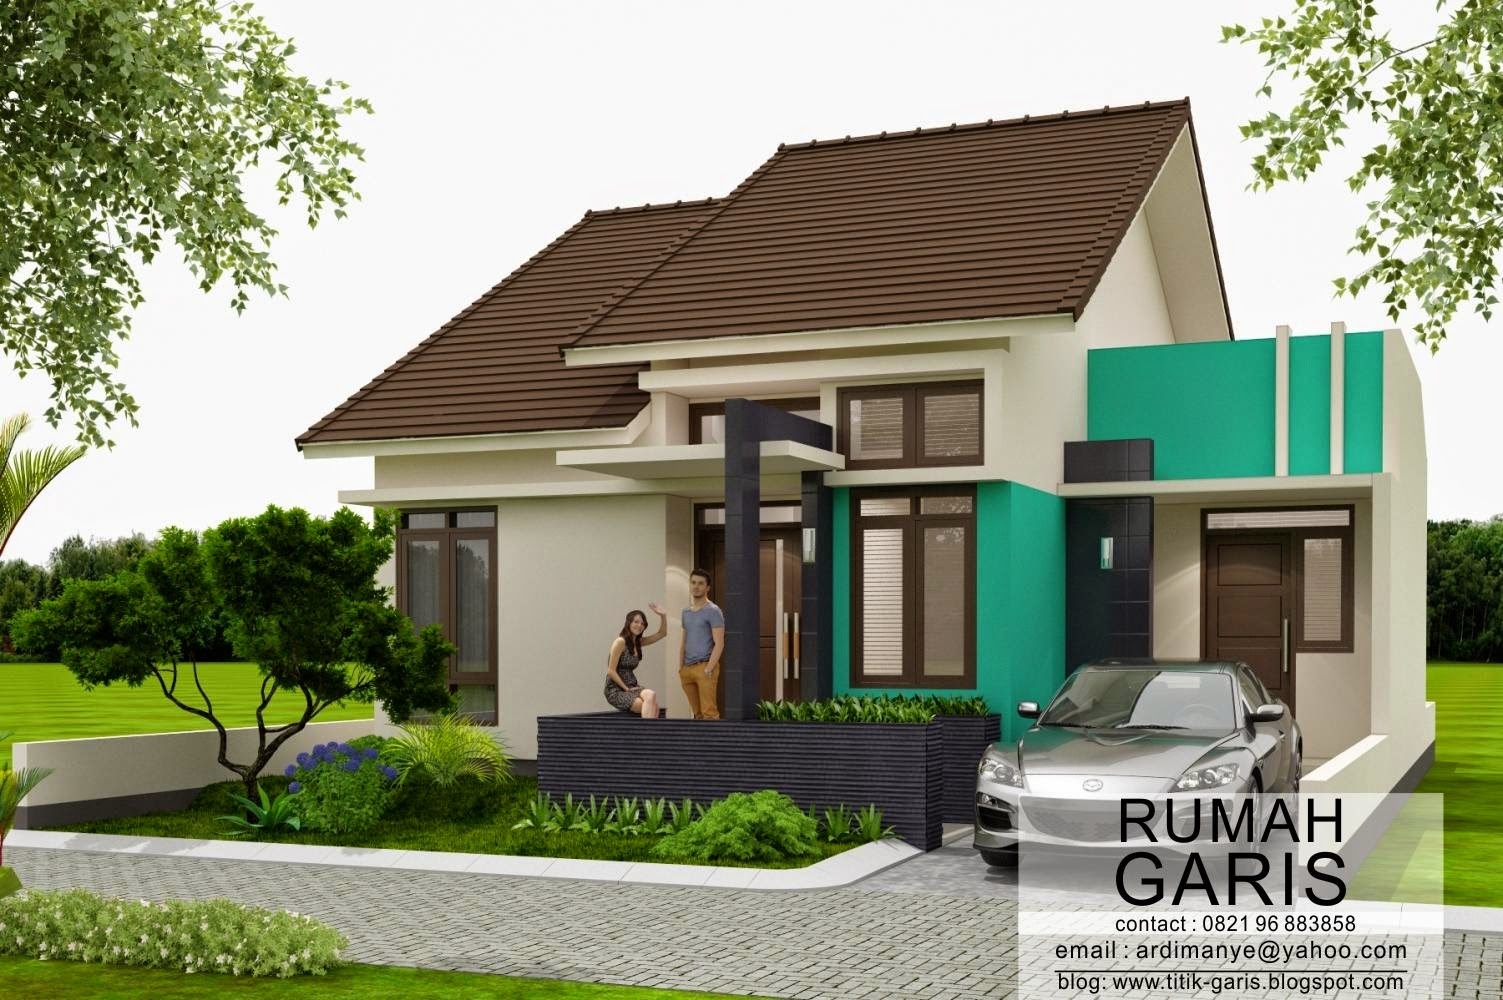 THOUGHTSKOTO Raised Modern Home Plans on glass home plans, southern living house plans, standard home plans, circular home plans, french creole cottage house plans, flat home plans, elevated house plans, reinforced home plans, garden home plans, french colonial house plans, normal home plans, contemporary lake house plans, oval home plans, rolled home plans, large home plans, ridge home plans, natural home plans, yes home plans, white home plans,